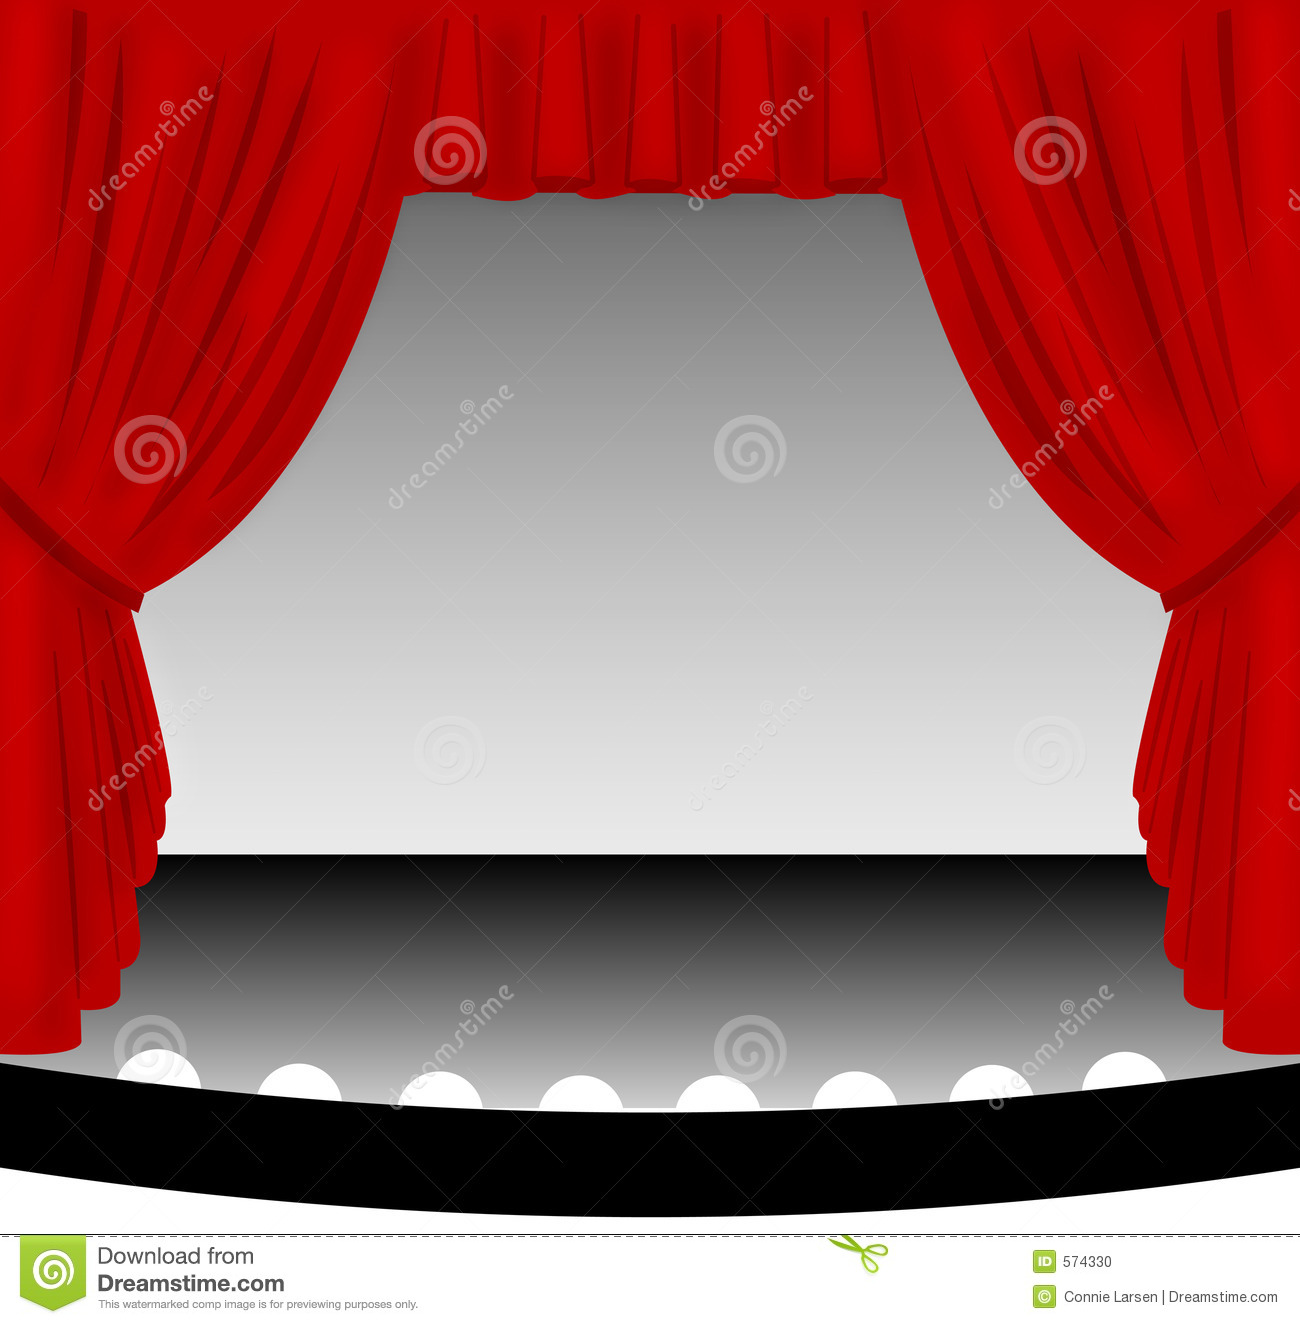 hight resolution of illustration of an old fashioned theater stage with a draped red fabric curtain